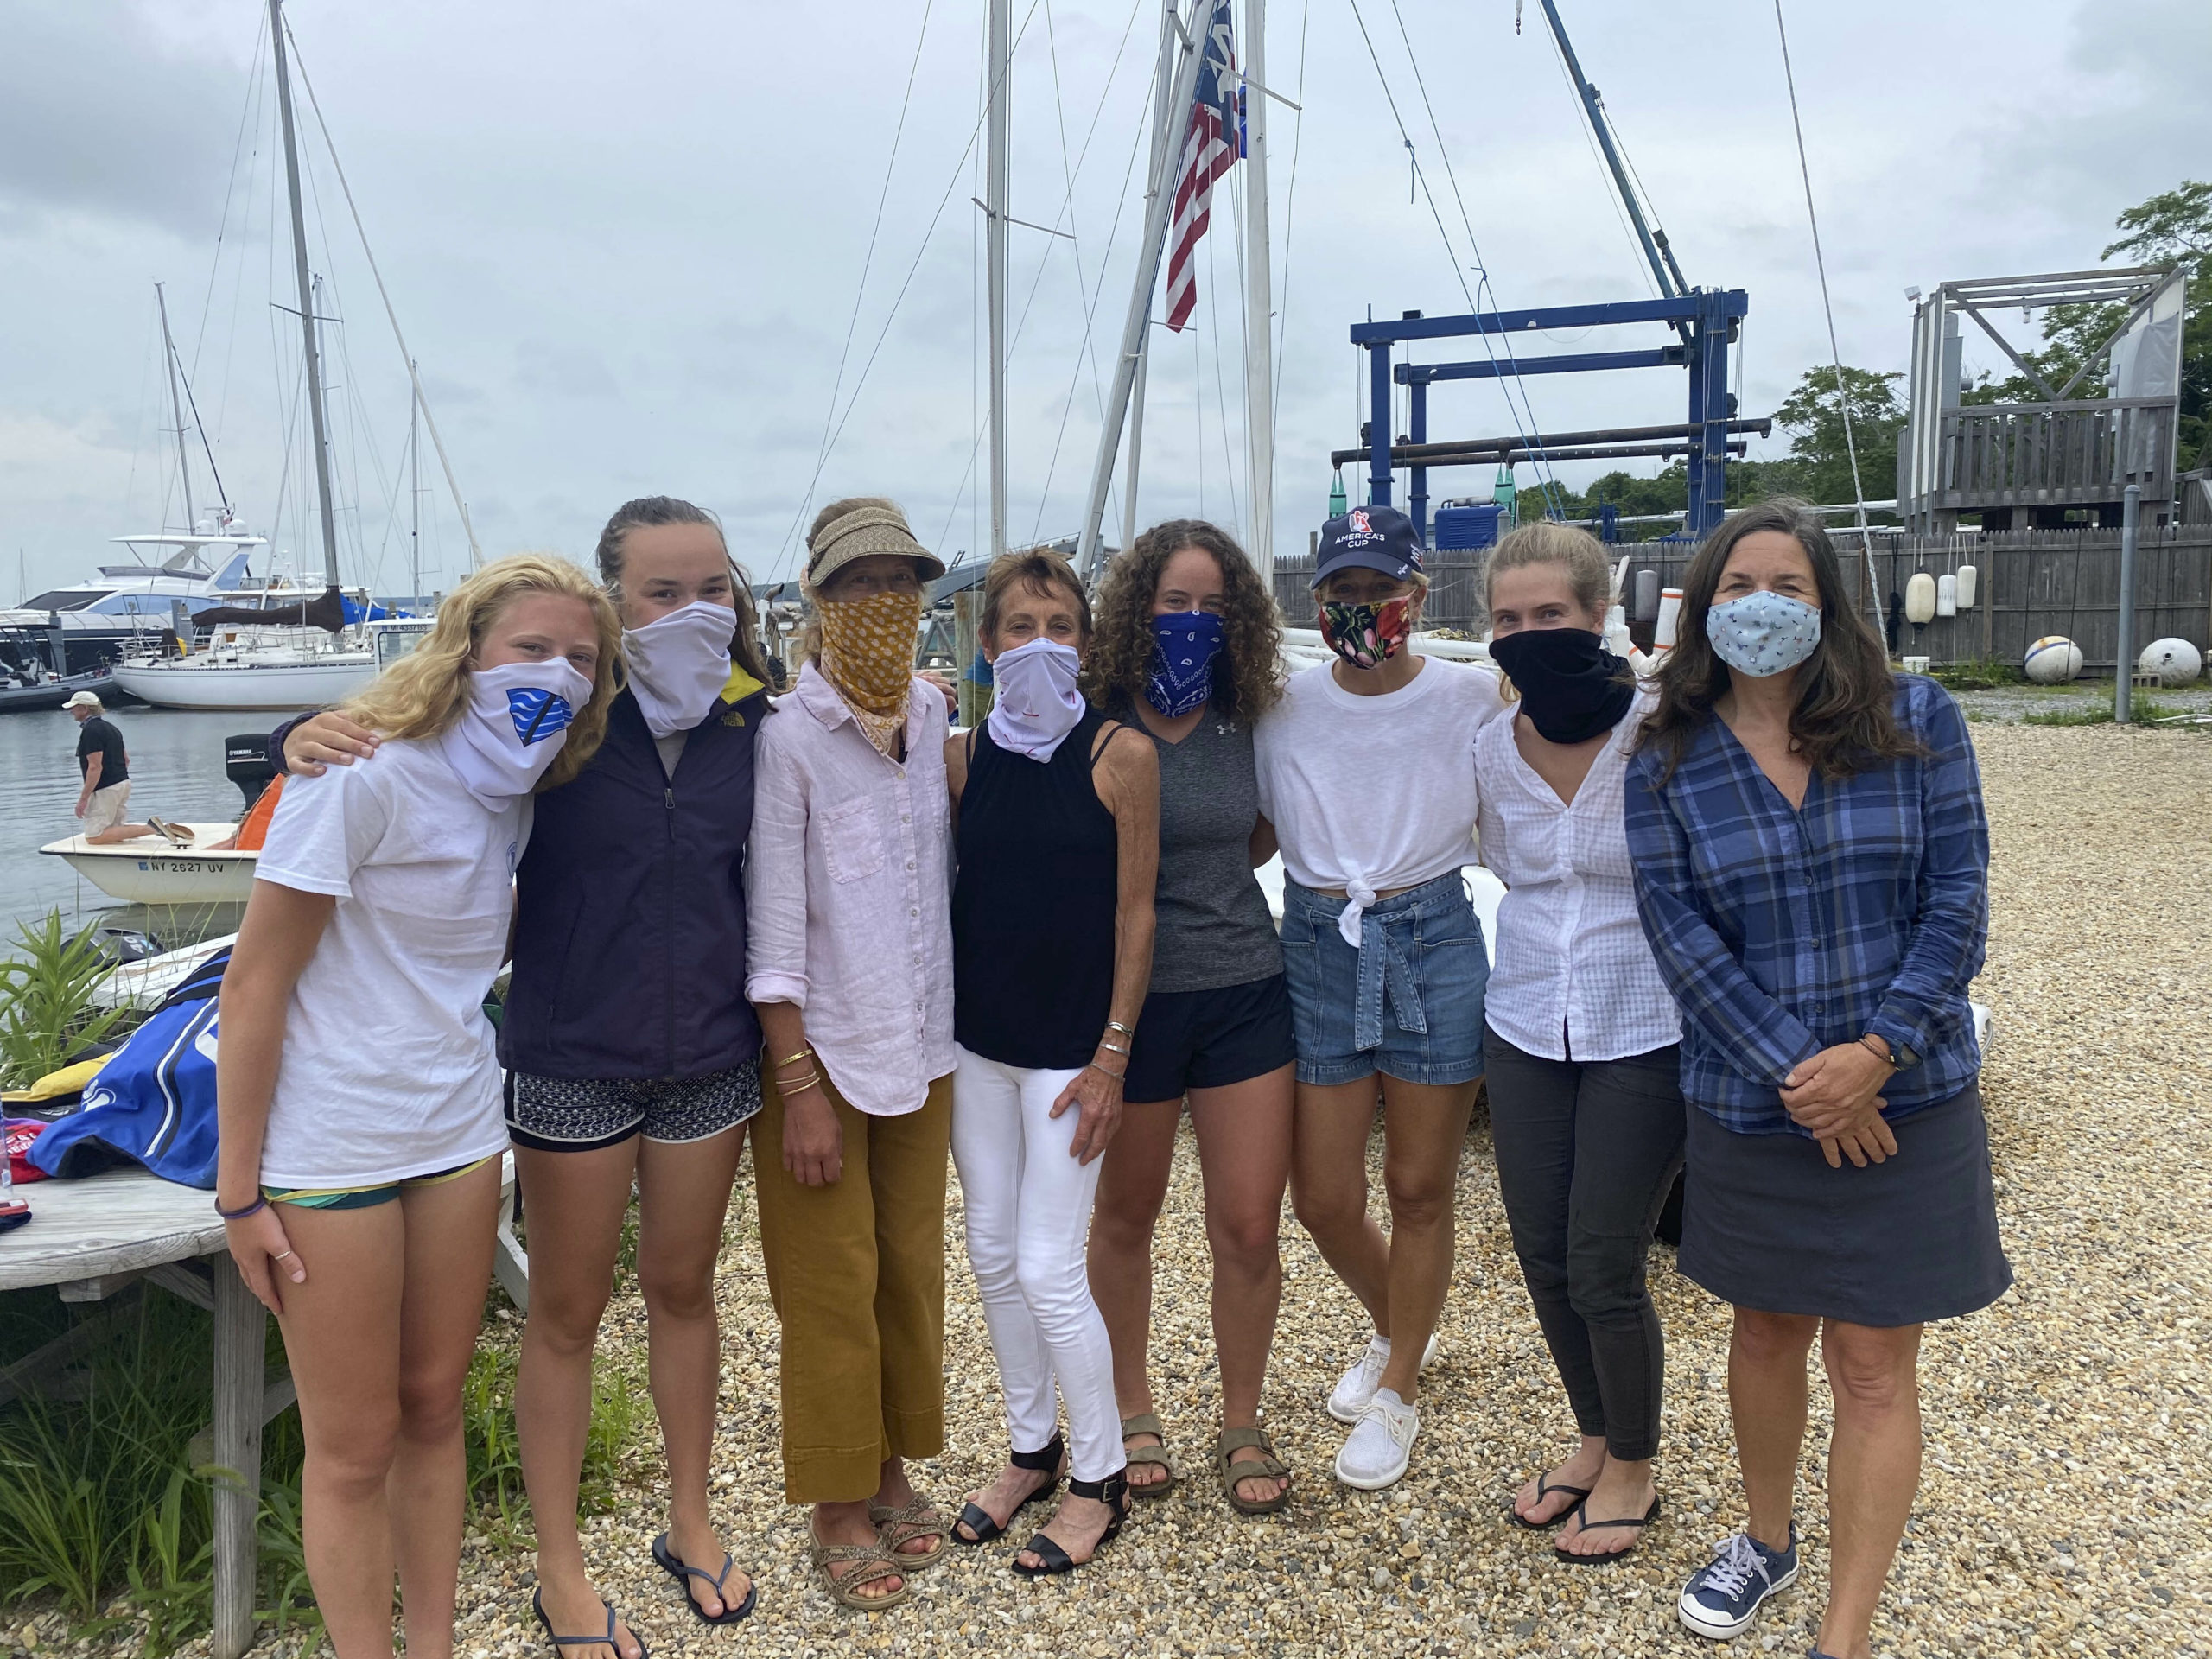 Laura O'Brien, Charlotte Kane, Sara Nightingale, Joan Butler, Cecilia de Havenon, Sarah Amaden, Amelia Steelman and Liz Joyce were some of the participants in the Oz Trophy Race at Breakwater Yacht Club in Sag Harbor on July 1.